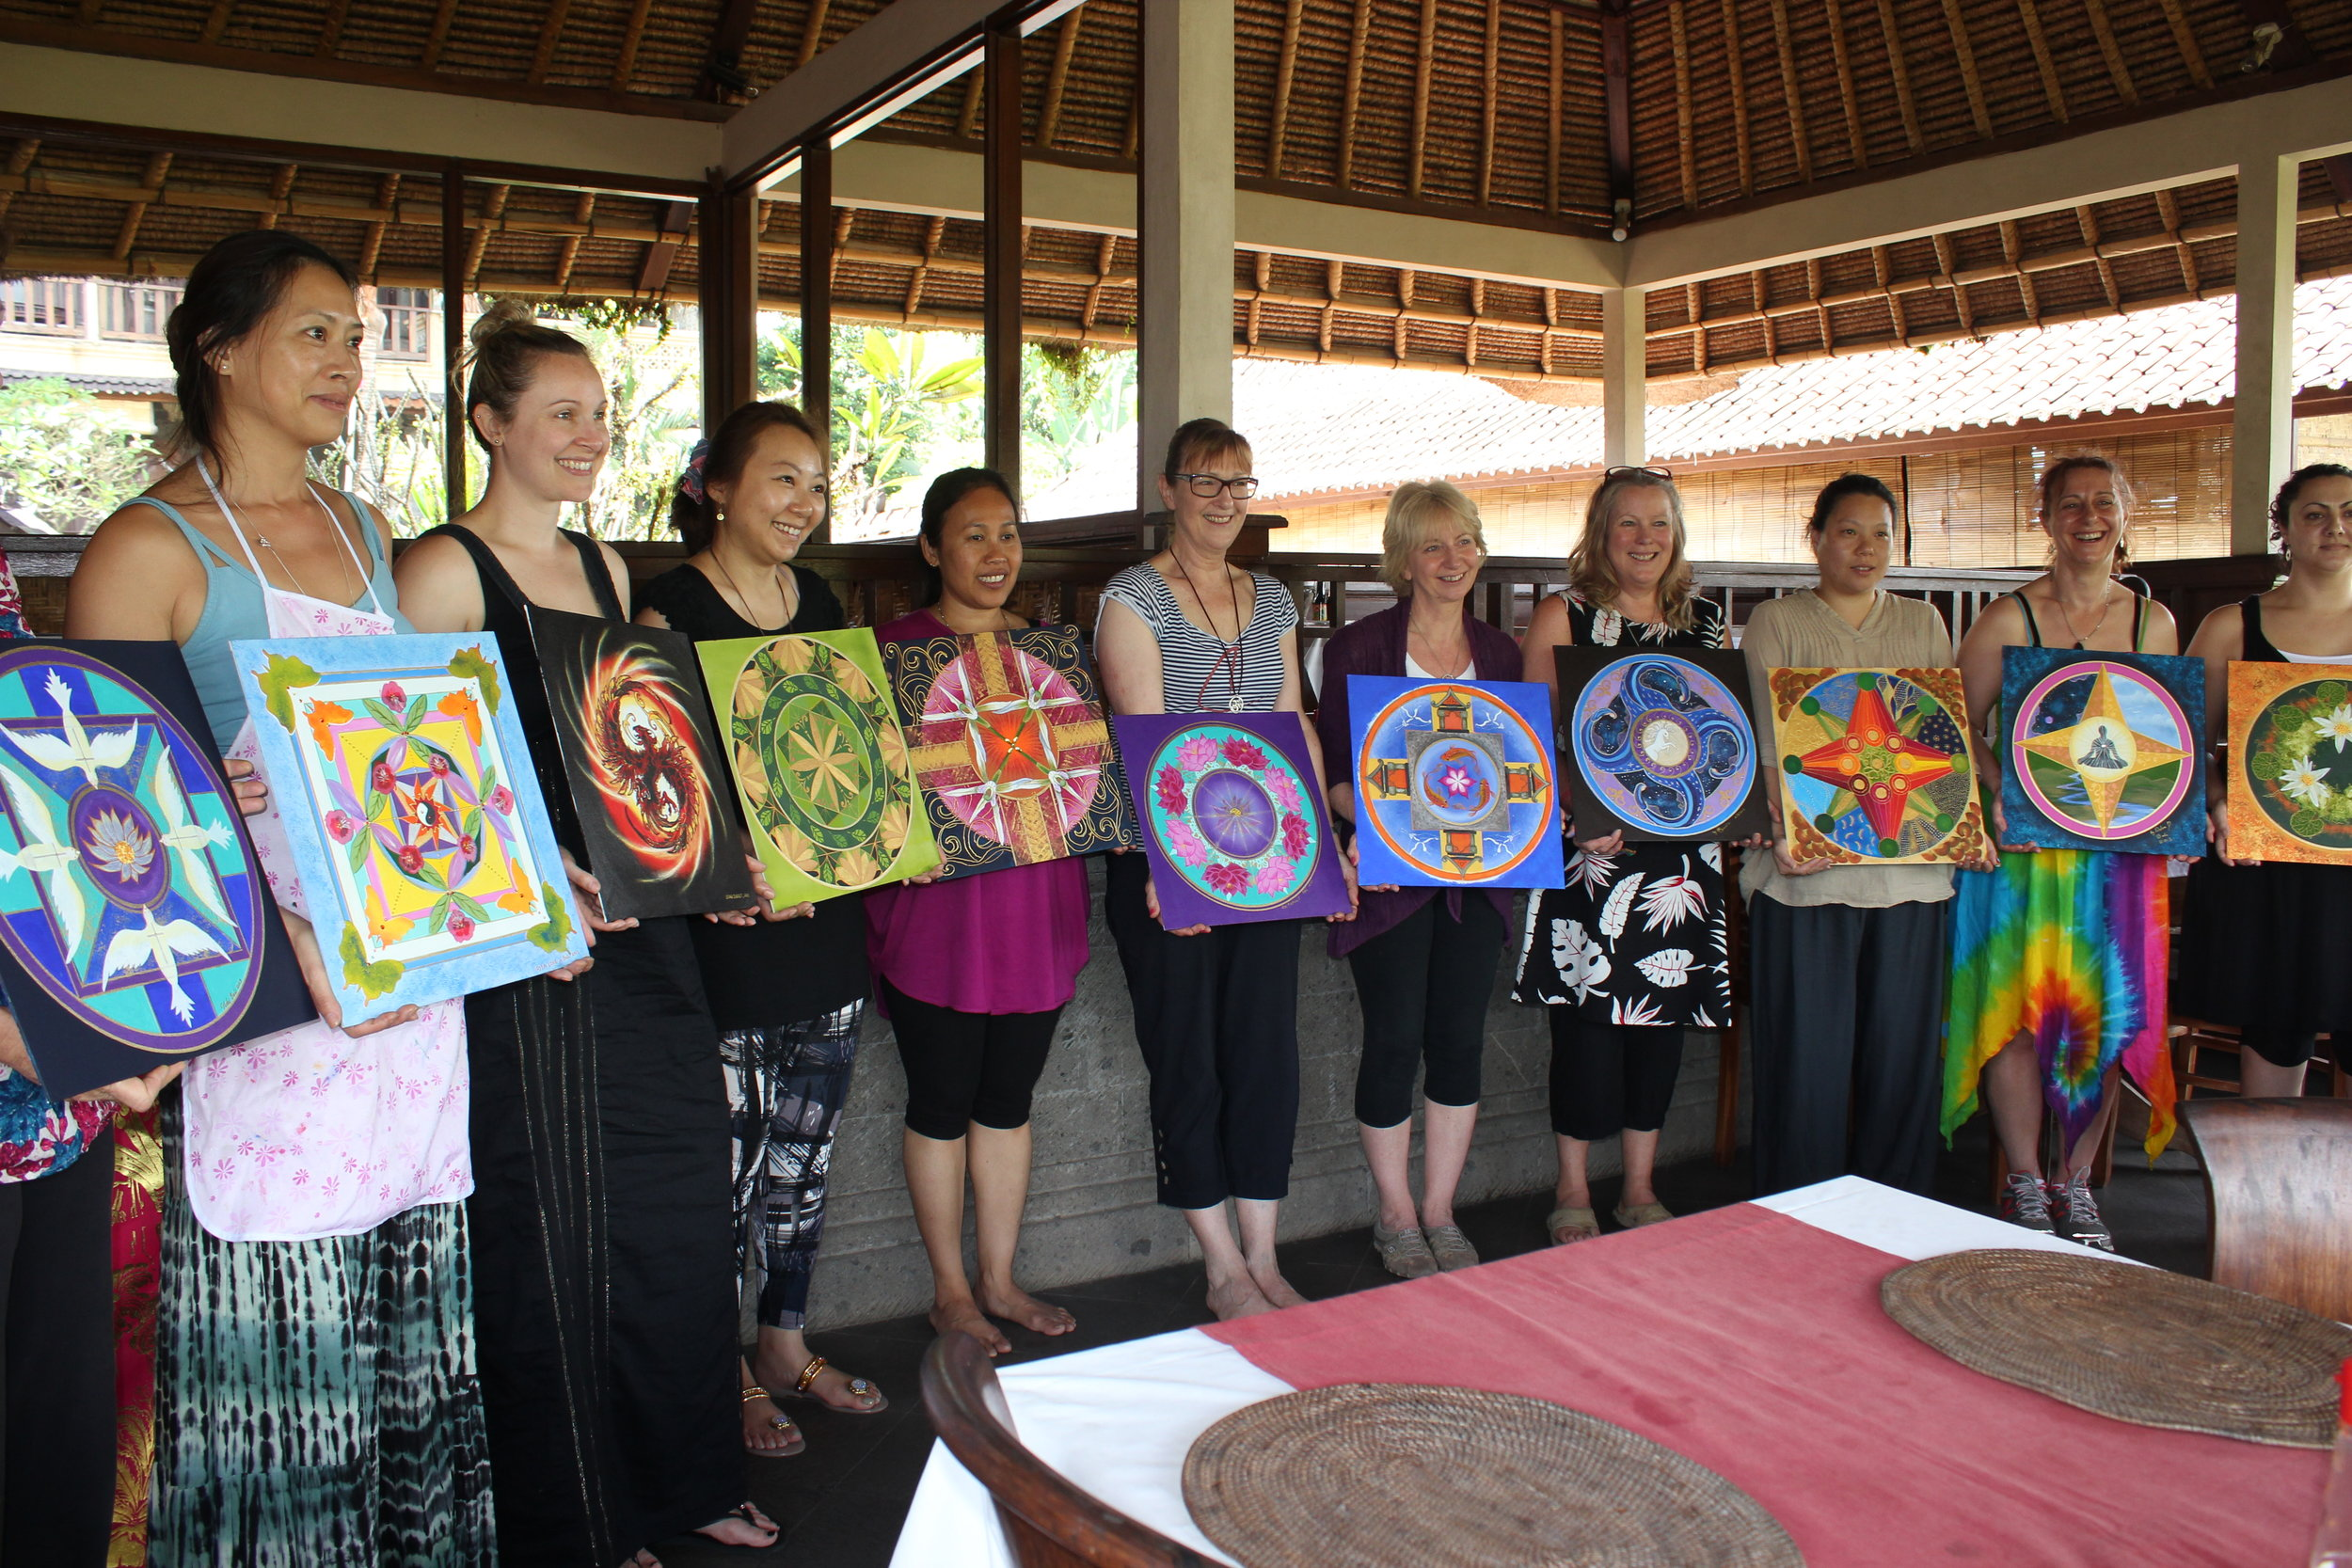 Bliss is making mandalas in Bali - Creating in the perfect environment is nurturing, healing, and deeply satisfying.